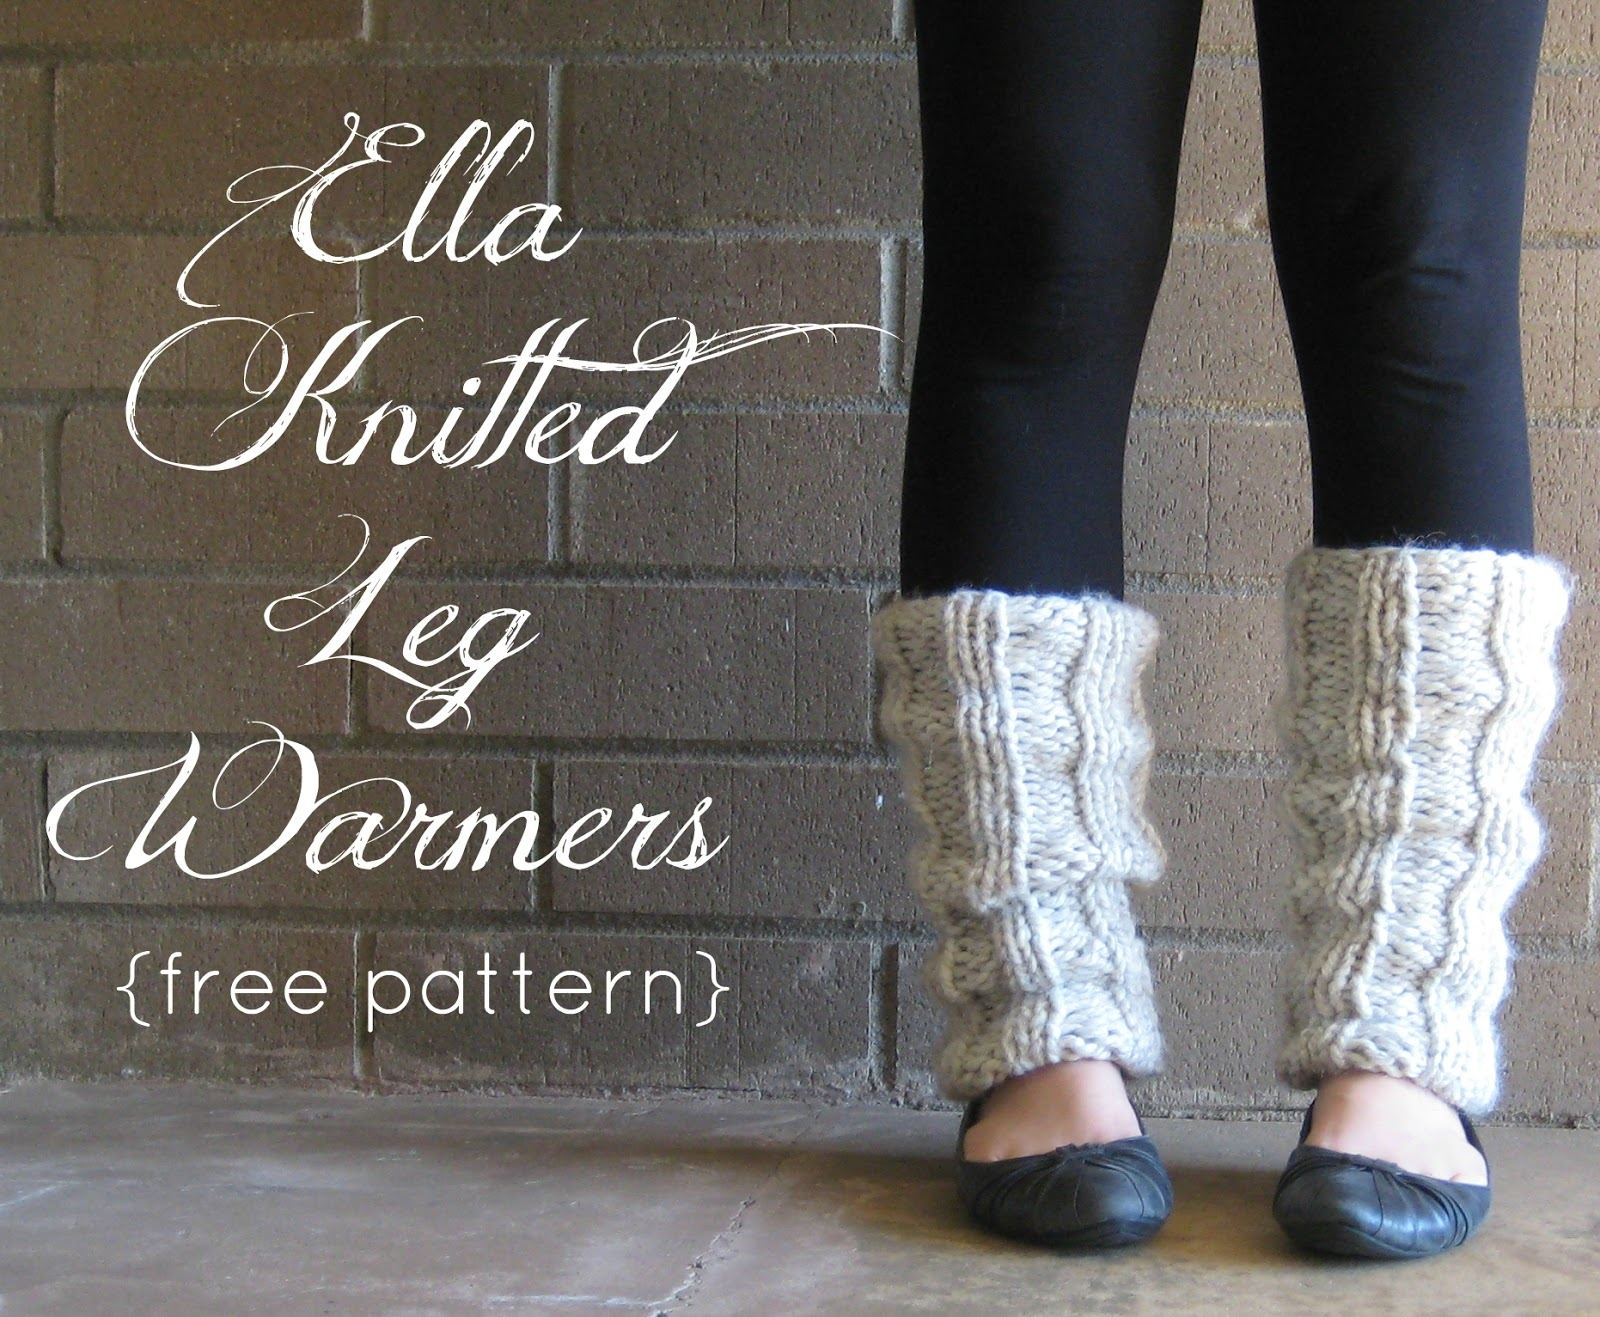 the willow nest: free pattern: Ella Knitted Leg Warmers